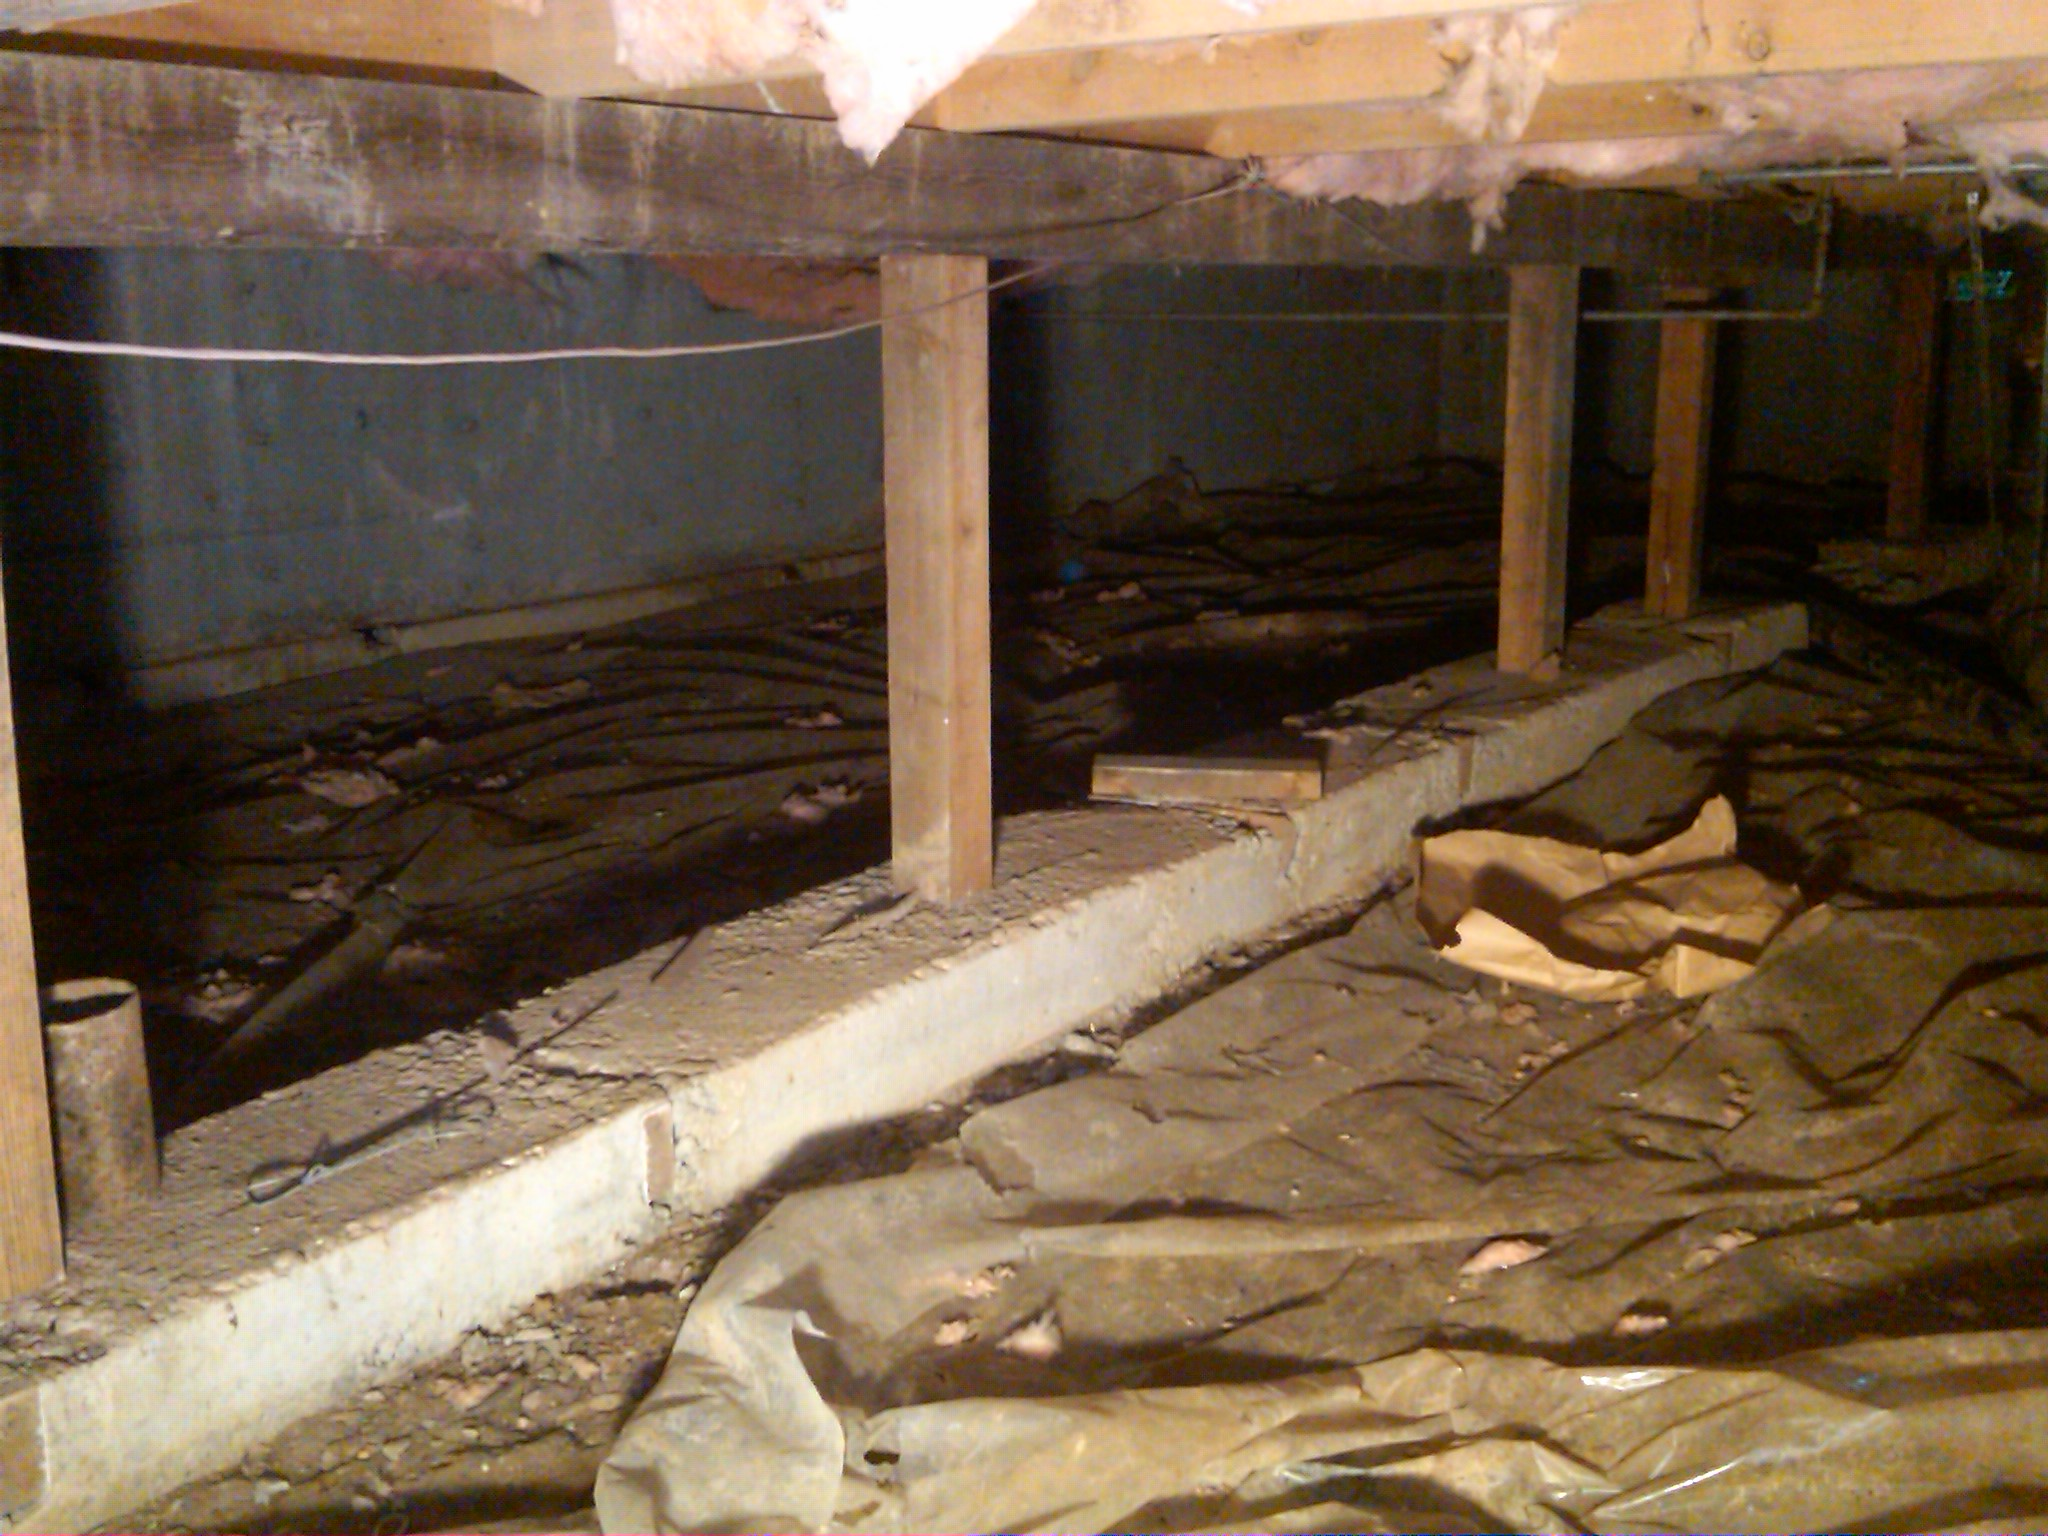 Crawl space restoration helps your entire house for Building a crawl space